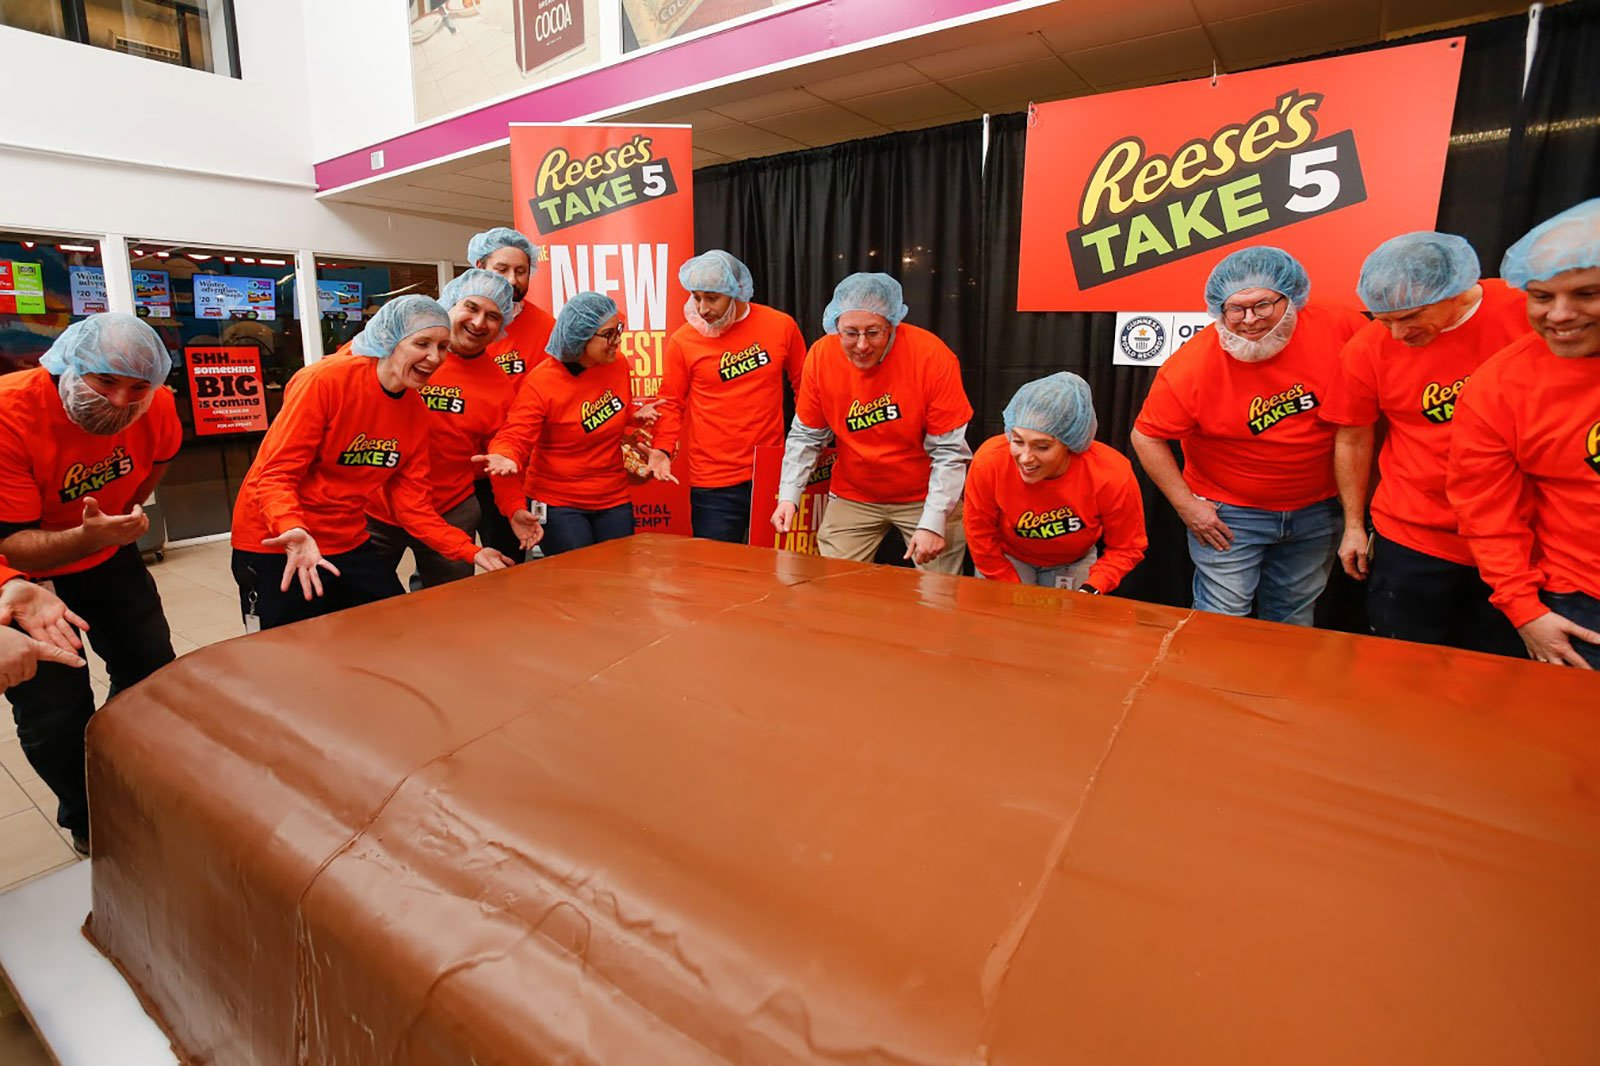 Reese's Take 5 breaks the Guinness World Record title for largest chocolate nut bar weighing in at 5,943 pounds on Thursday, Jan 30, 2020 in Hershey, Pennsylvania. The record-breaking bar was created in just 5 days, and mirrors the classic Reese's Take 5 bar with a delicious combination of five layers – Reese's peanut butter, chocolate, caramel, peanuts and pretzels.(Mark Stehle/AP Images for Hershey)